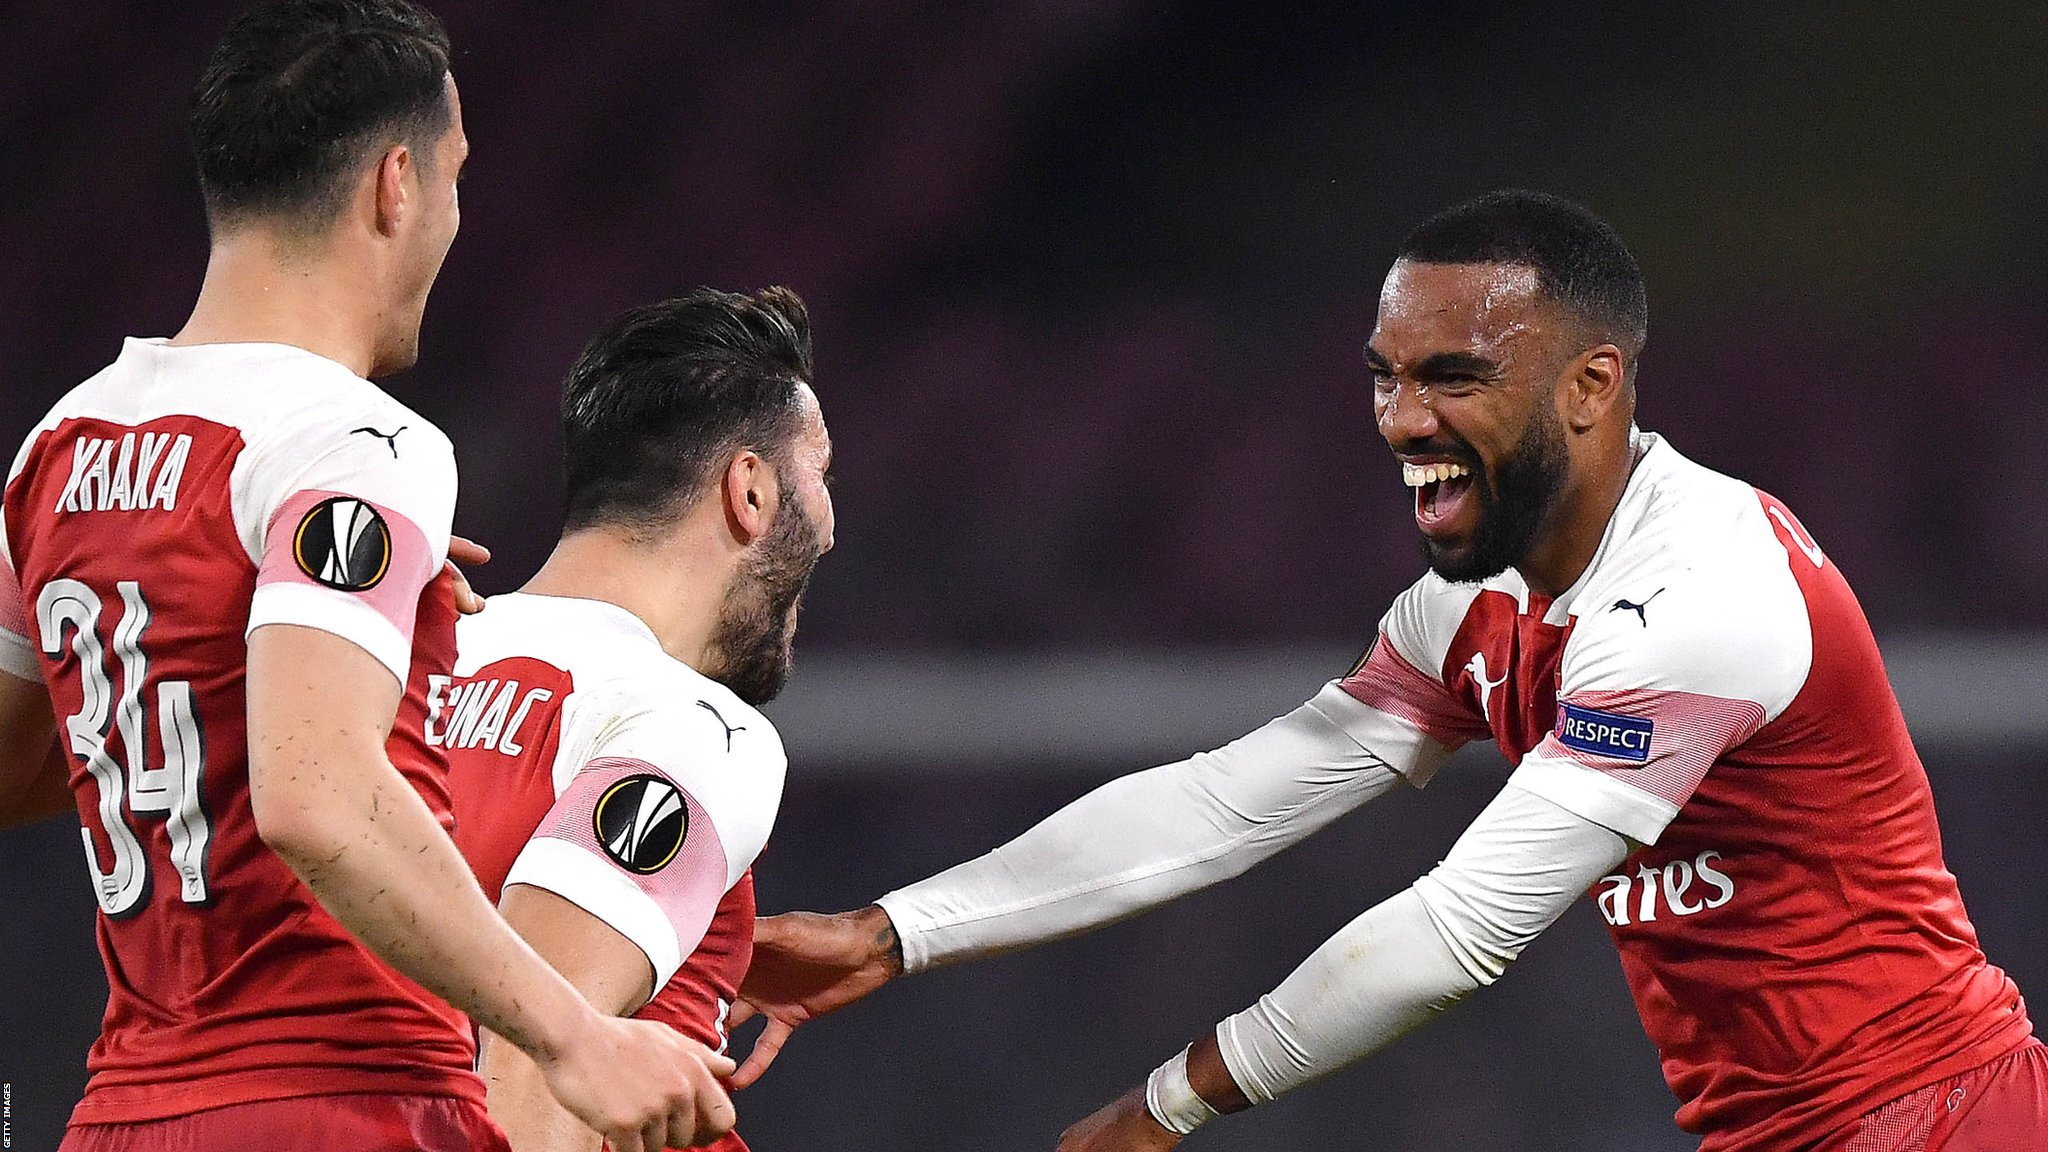 Napoli 0-1 Arsenal: Alexandre Lacazette seals Europa League semi-final spot